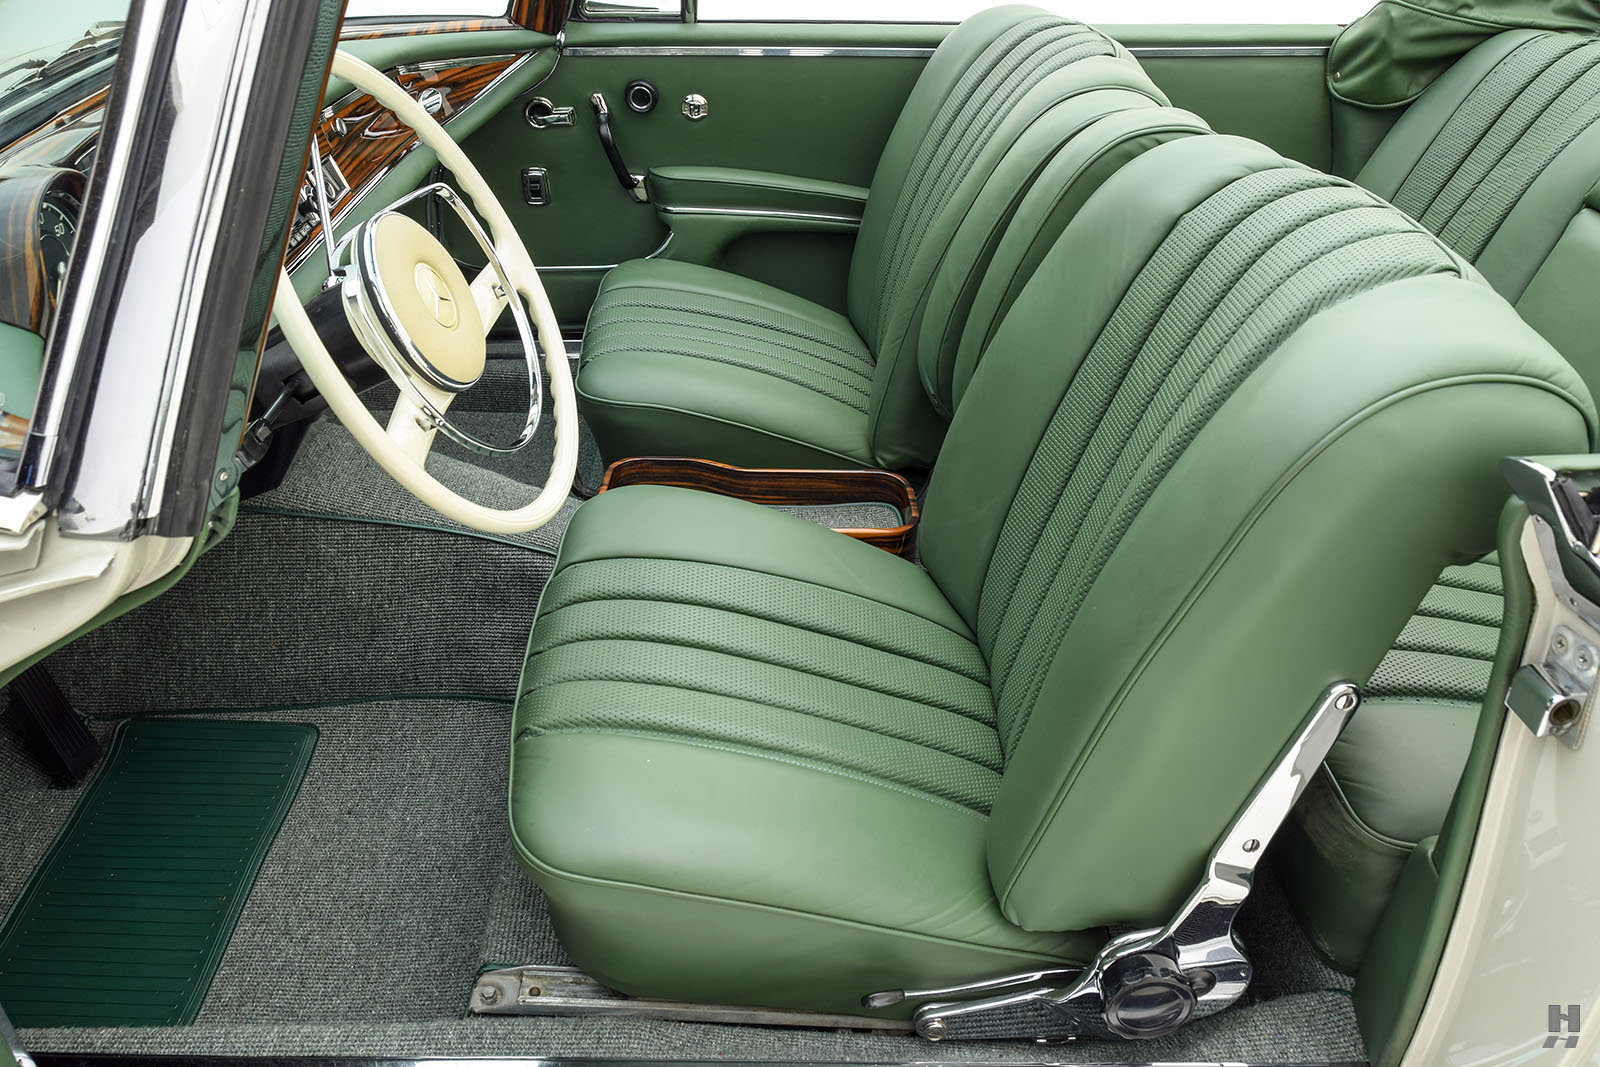 1967 MERCEDES-BENZ 300SE CONVERTIBLE For Sale (picture 3 of 6)